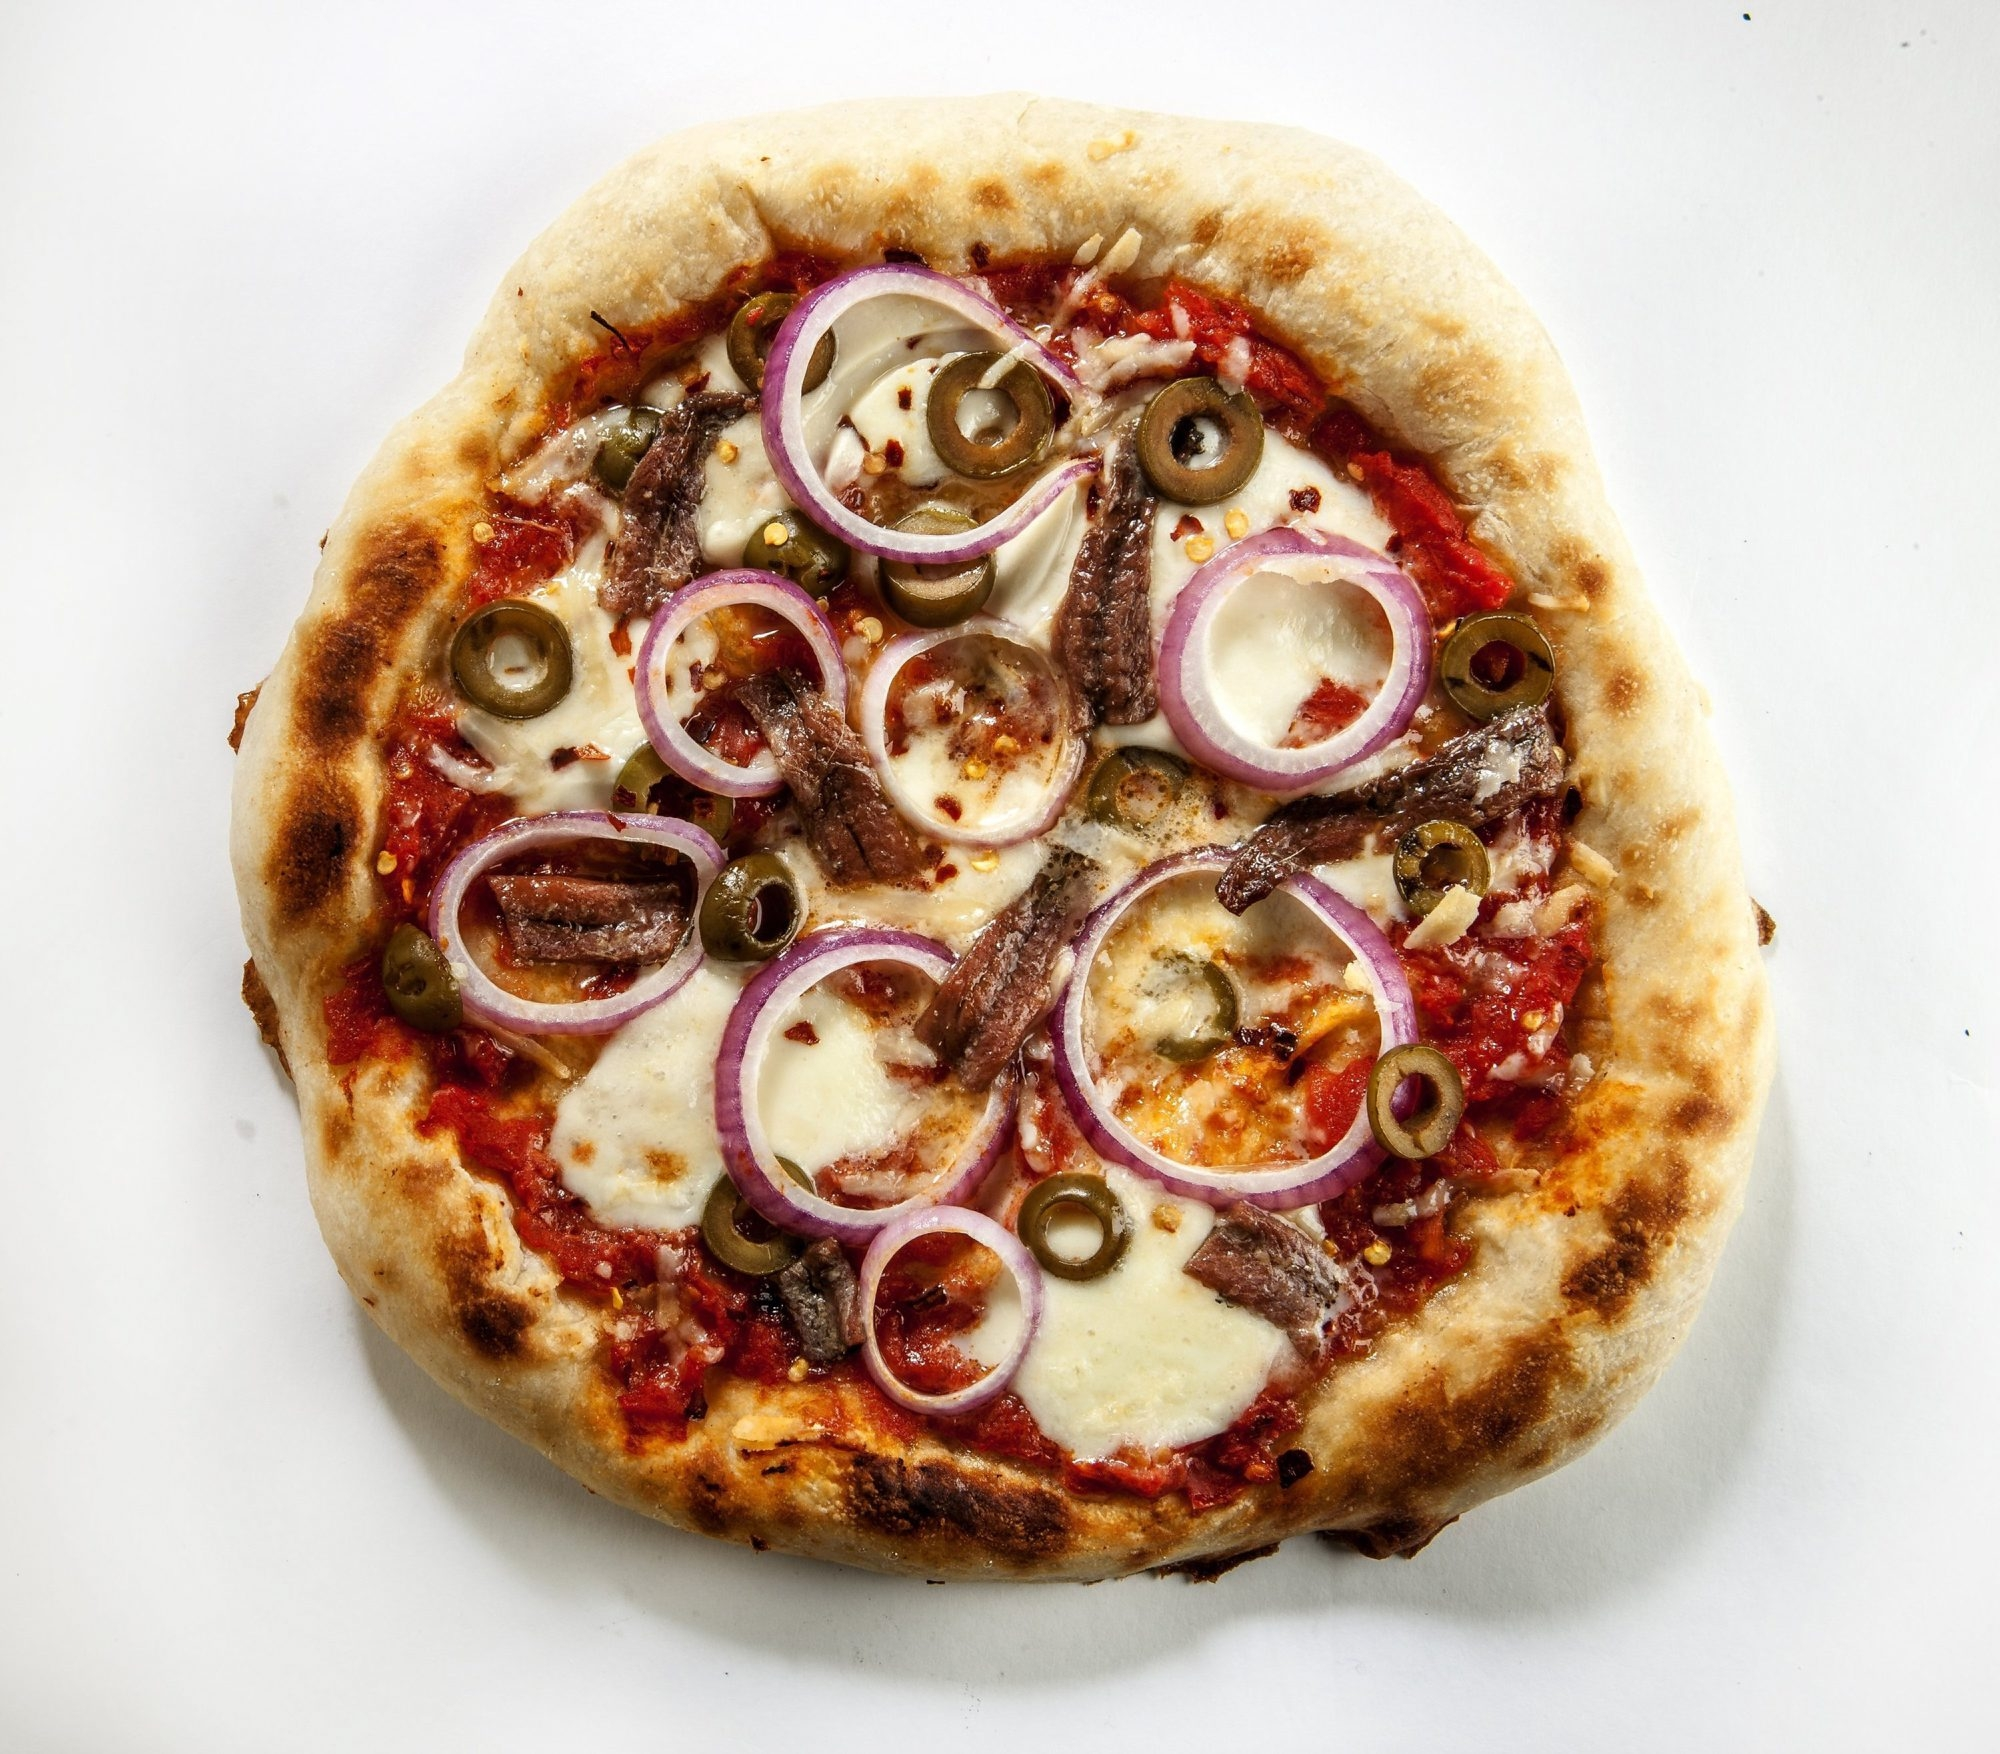 Anchovies are best known for being a pizza and salad topping, but they can bring a pop of flavor to many other dishes.